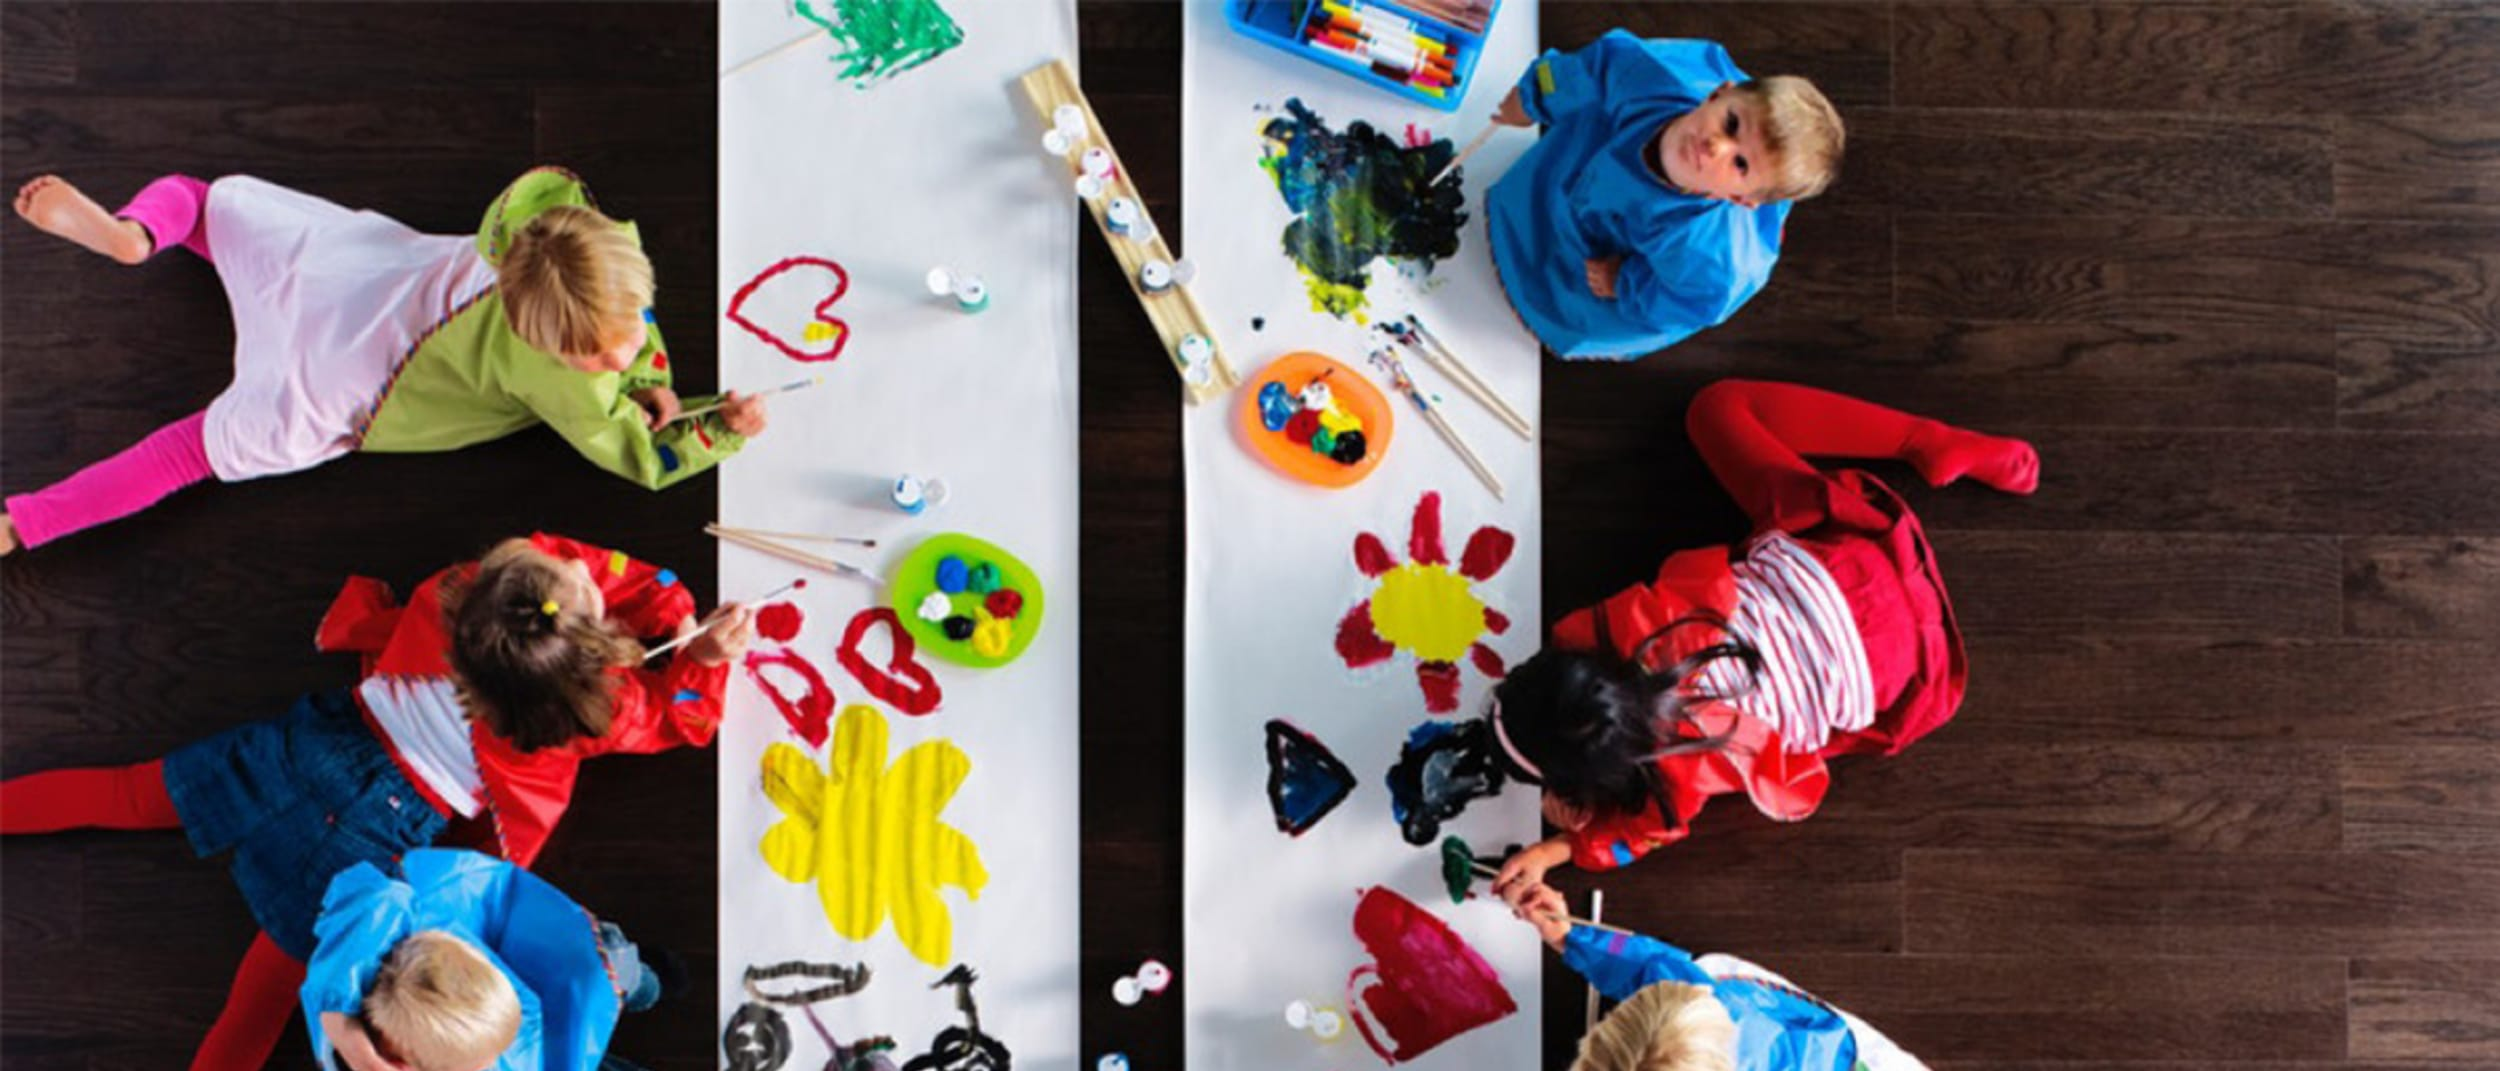 IKEA: School holidays activities